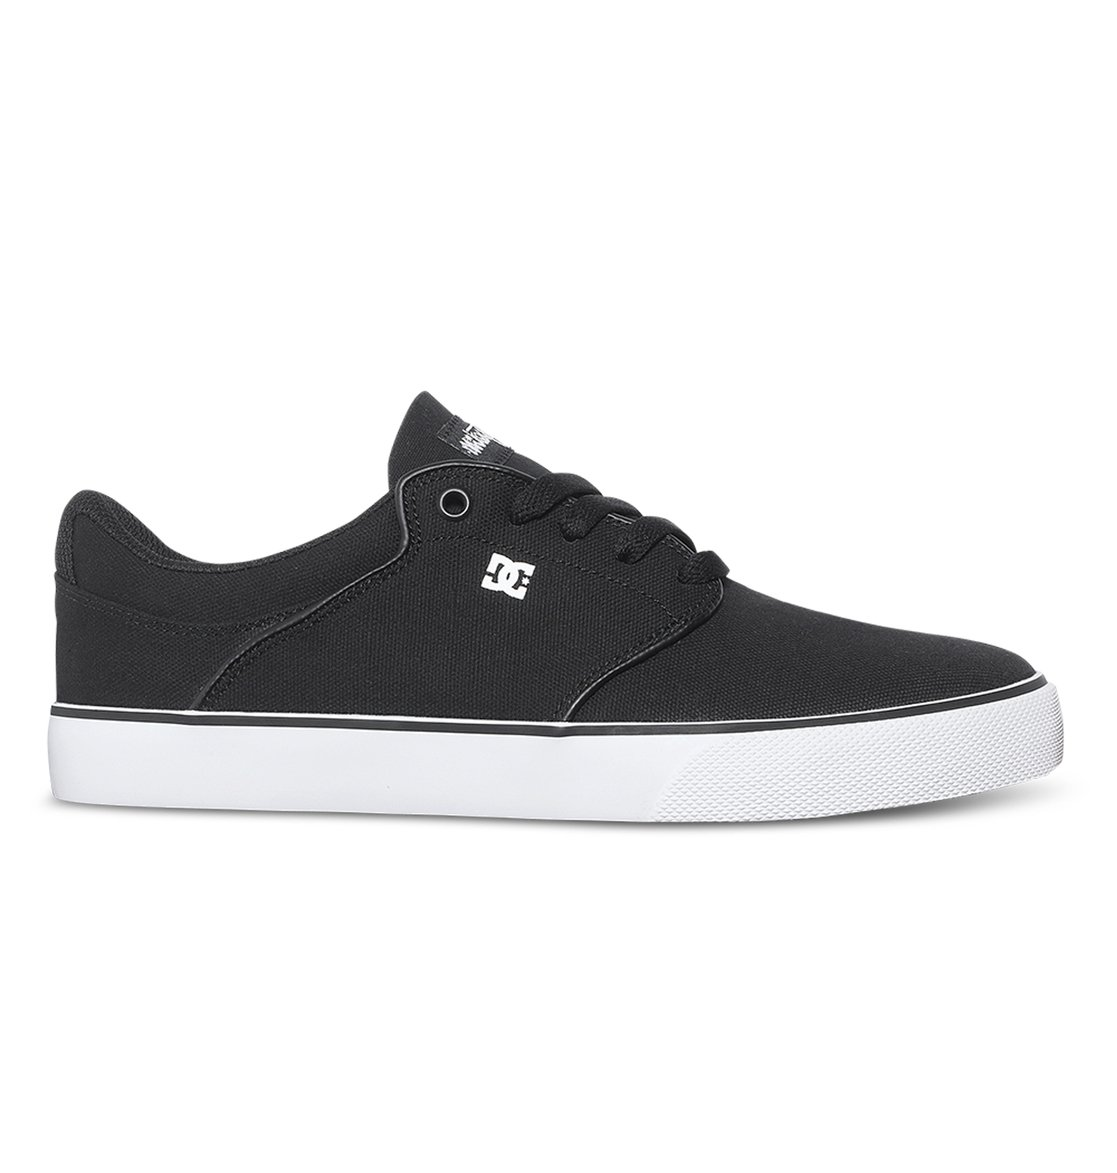 Mikey Taylor Vulc TX - Low-Top Shoes от DC Shoes